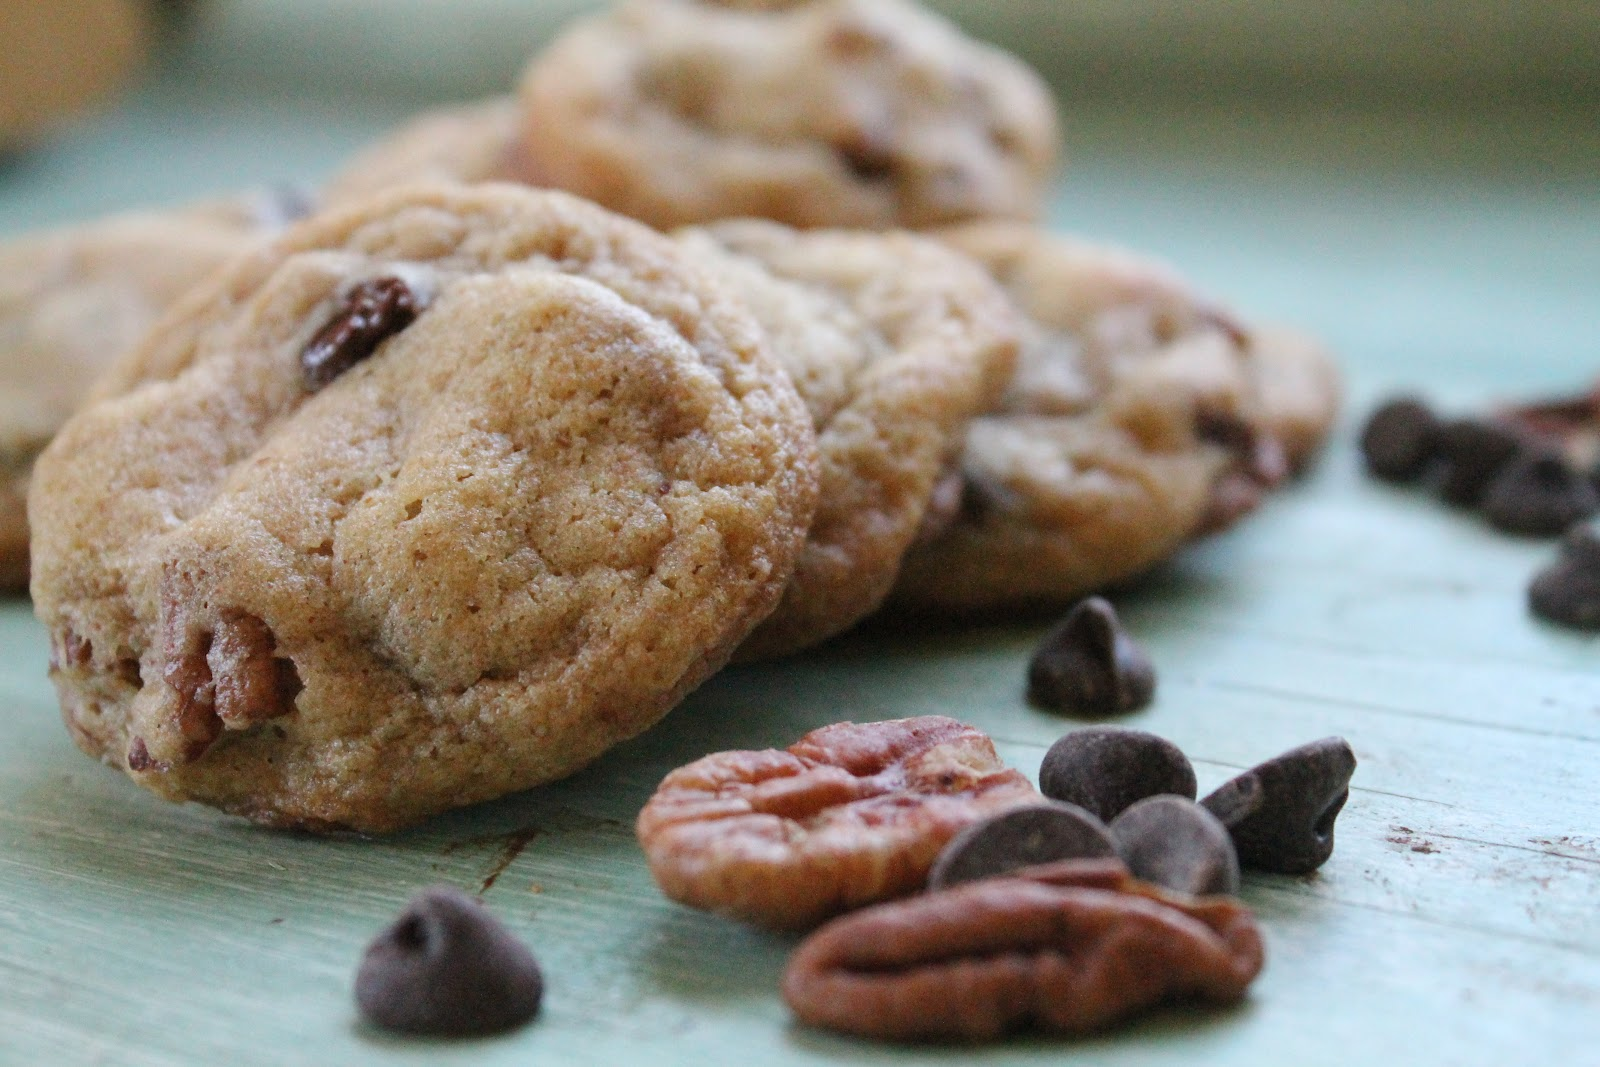 Nestle Toll House Chocolate Chip Cookies | My Darling Vegan